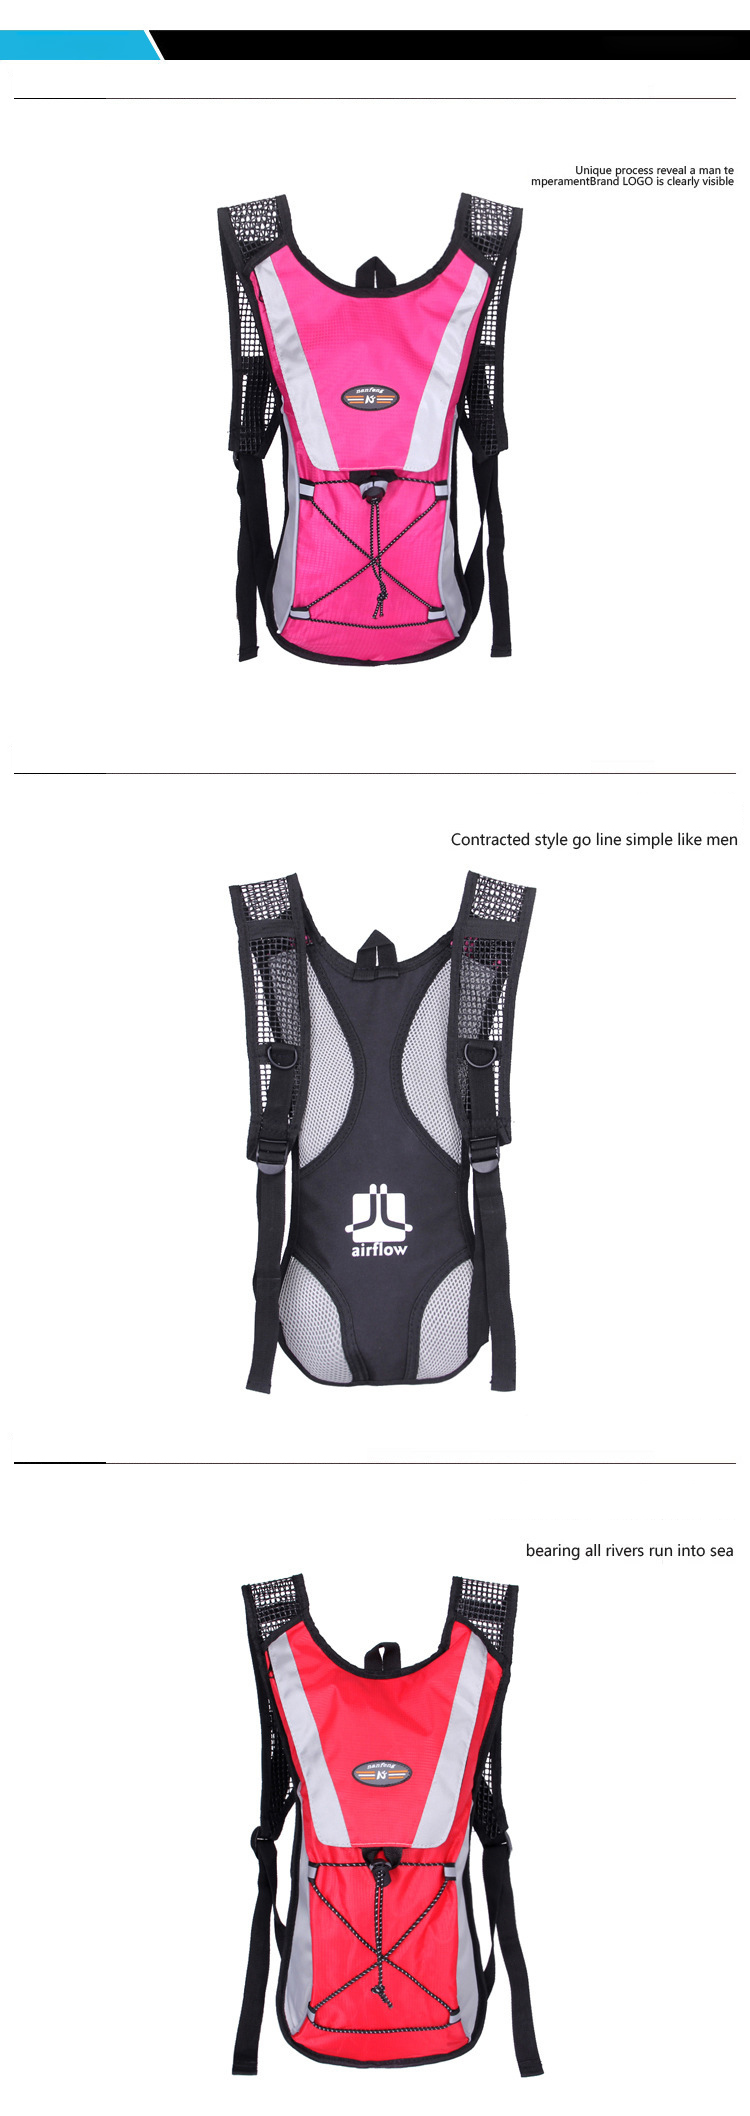 2019 Option Mini Running Backpack 2L Water Bag Cycling Bag Hiking ... 969cc1ef38